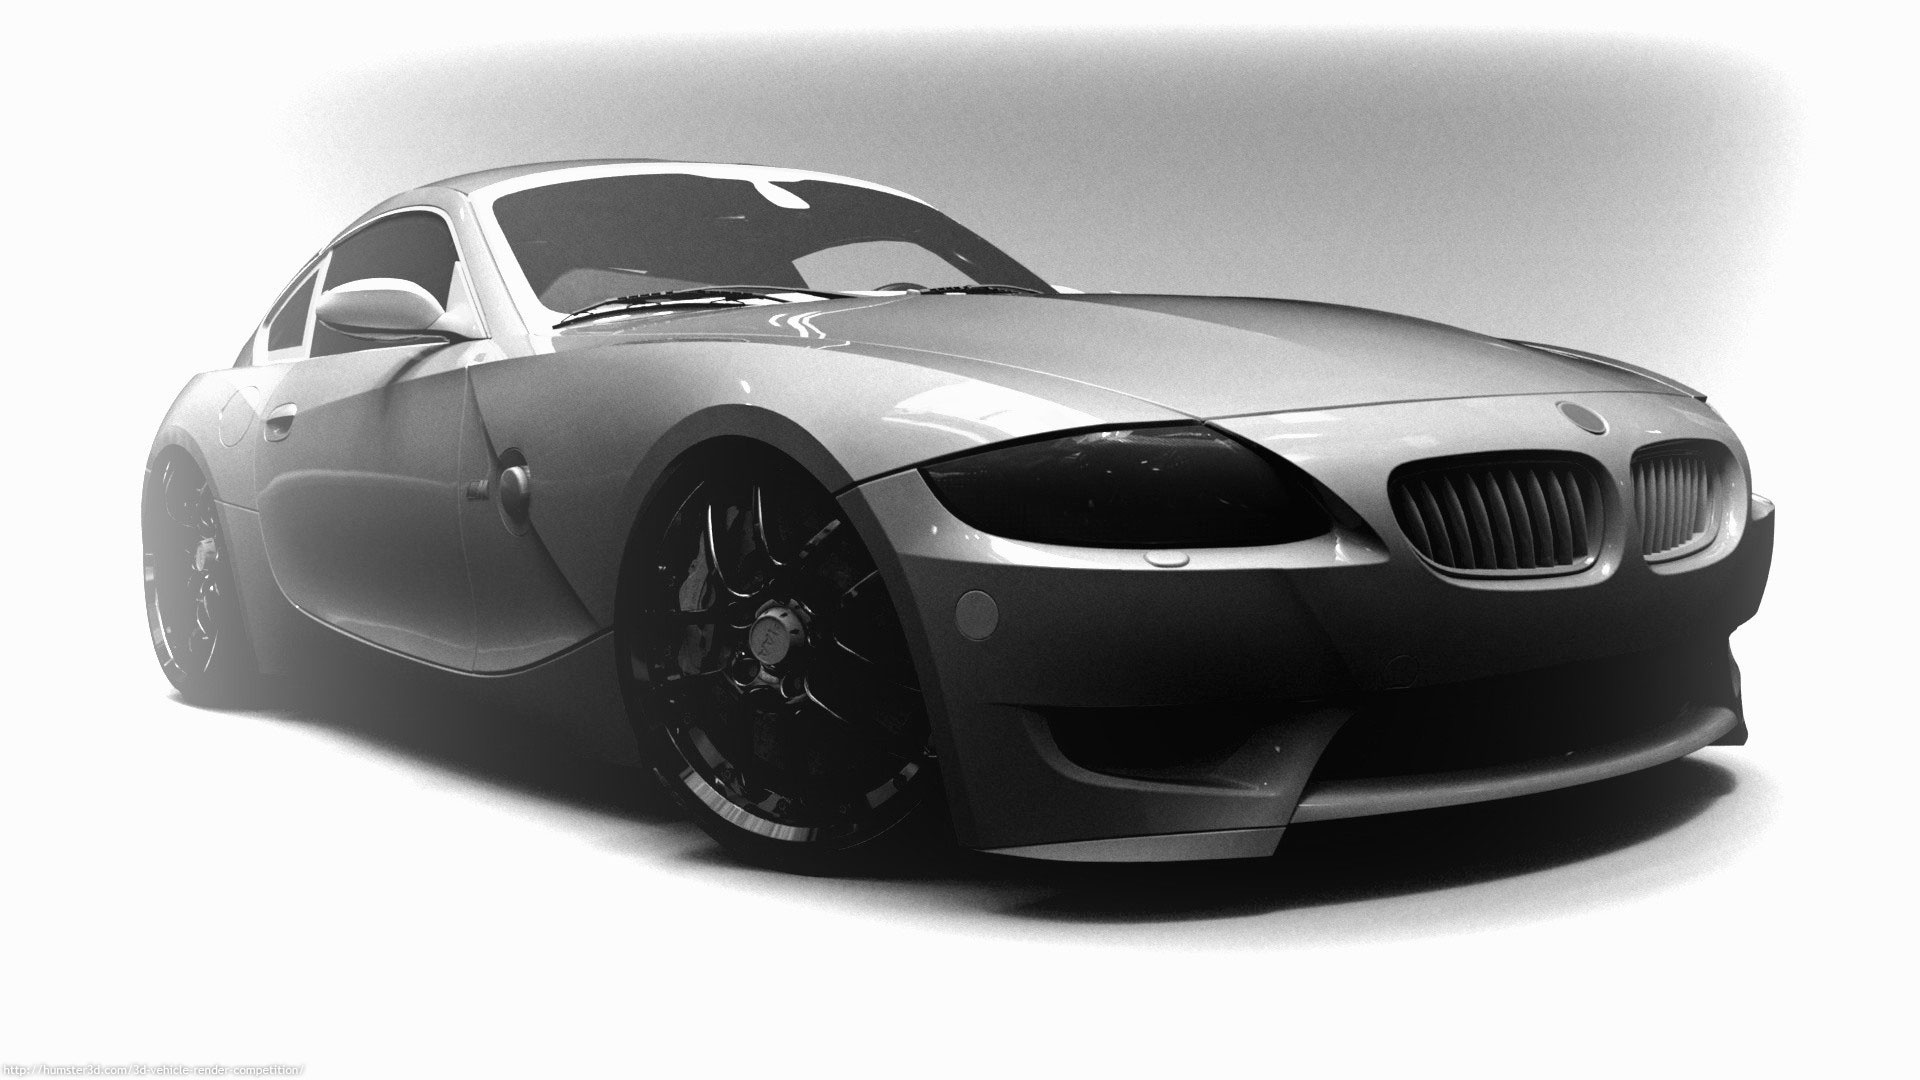 Z4 custom coupe 3d art